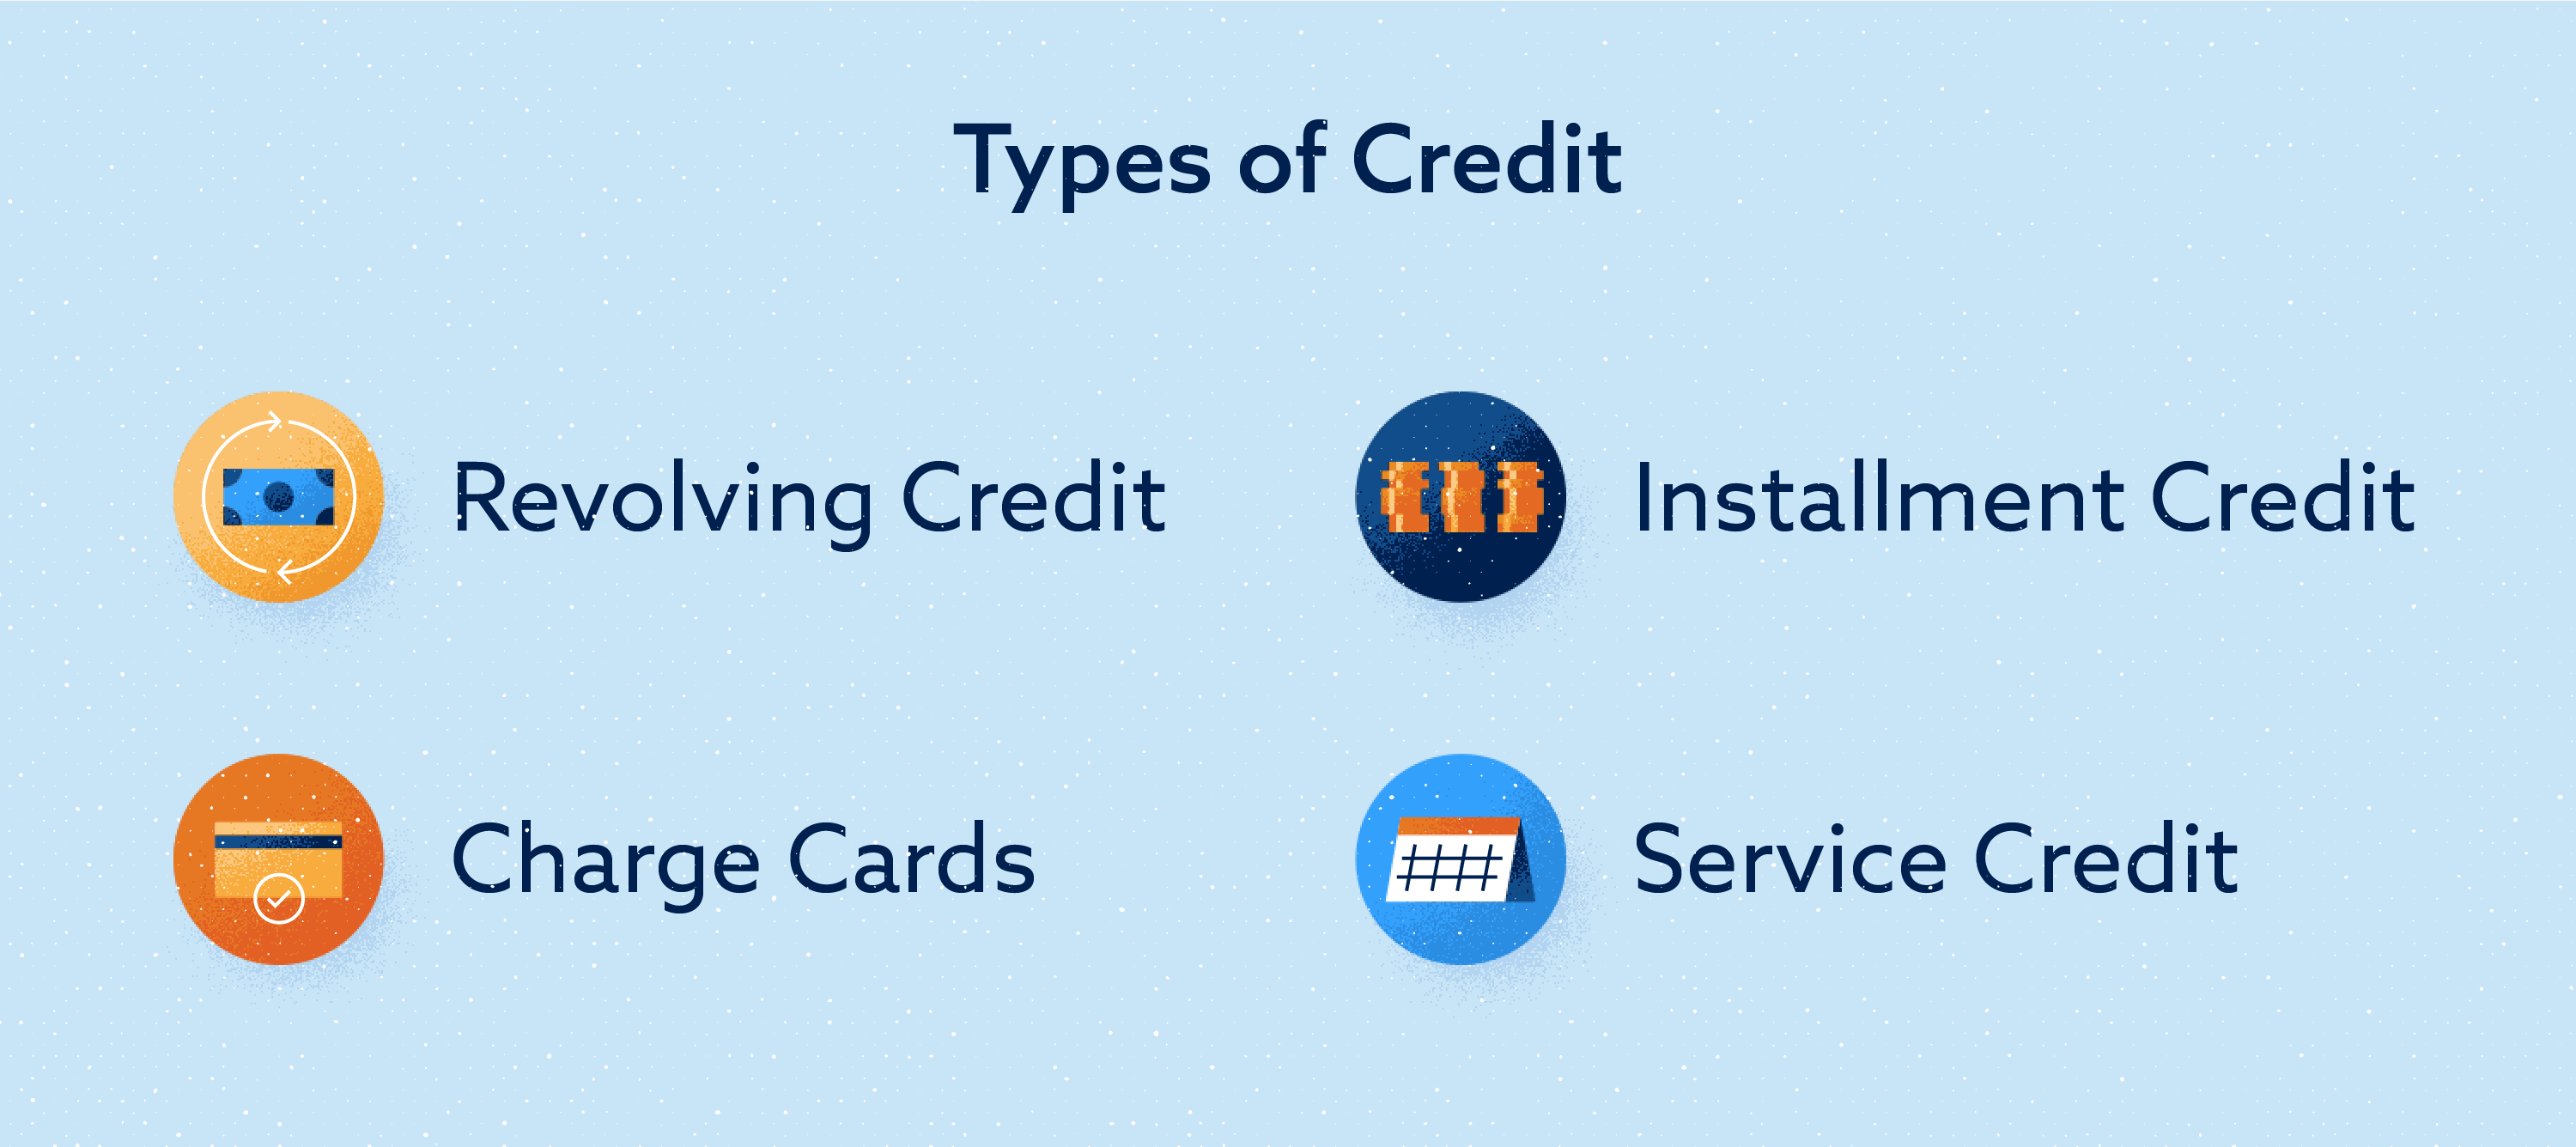 Types of Credit Image